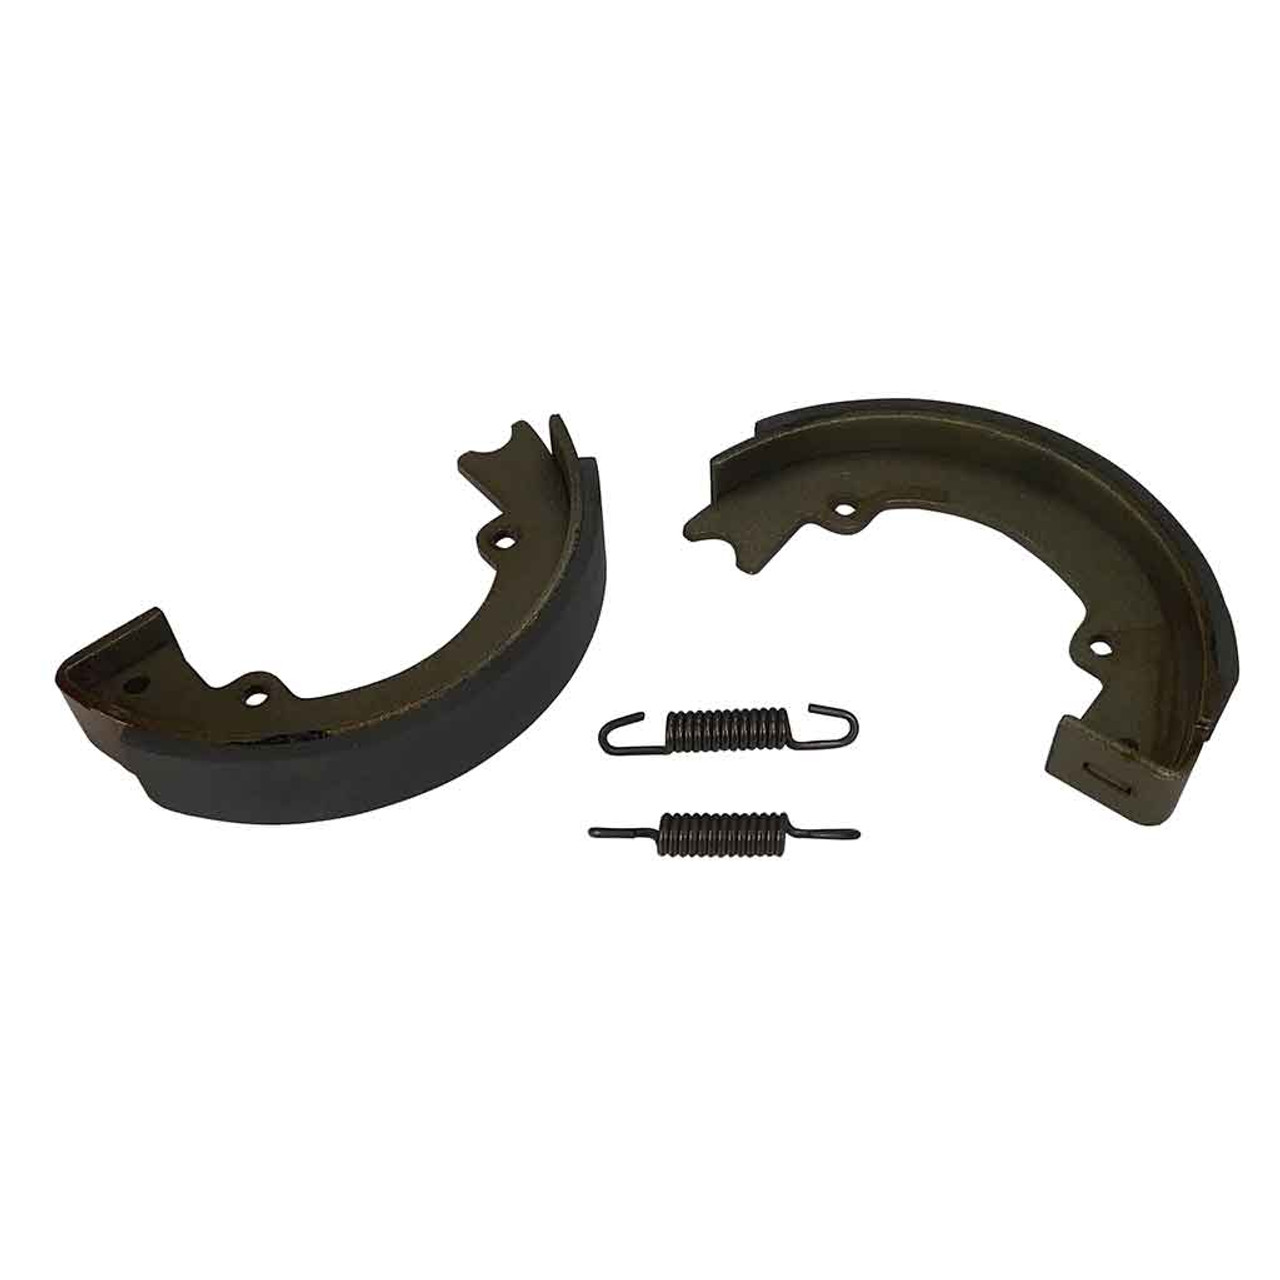 """3/4"""" Wide Lined Replacement Brake Shoes for 4-1/2"""" Brake Assembly With Springs"""